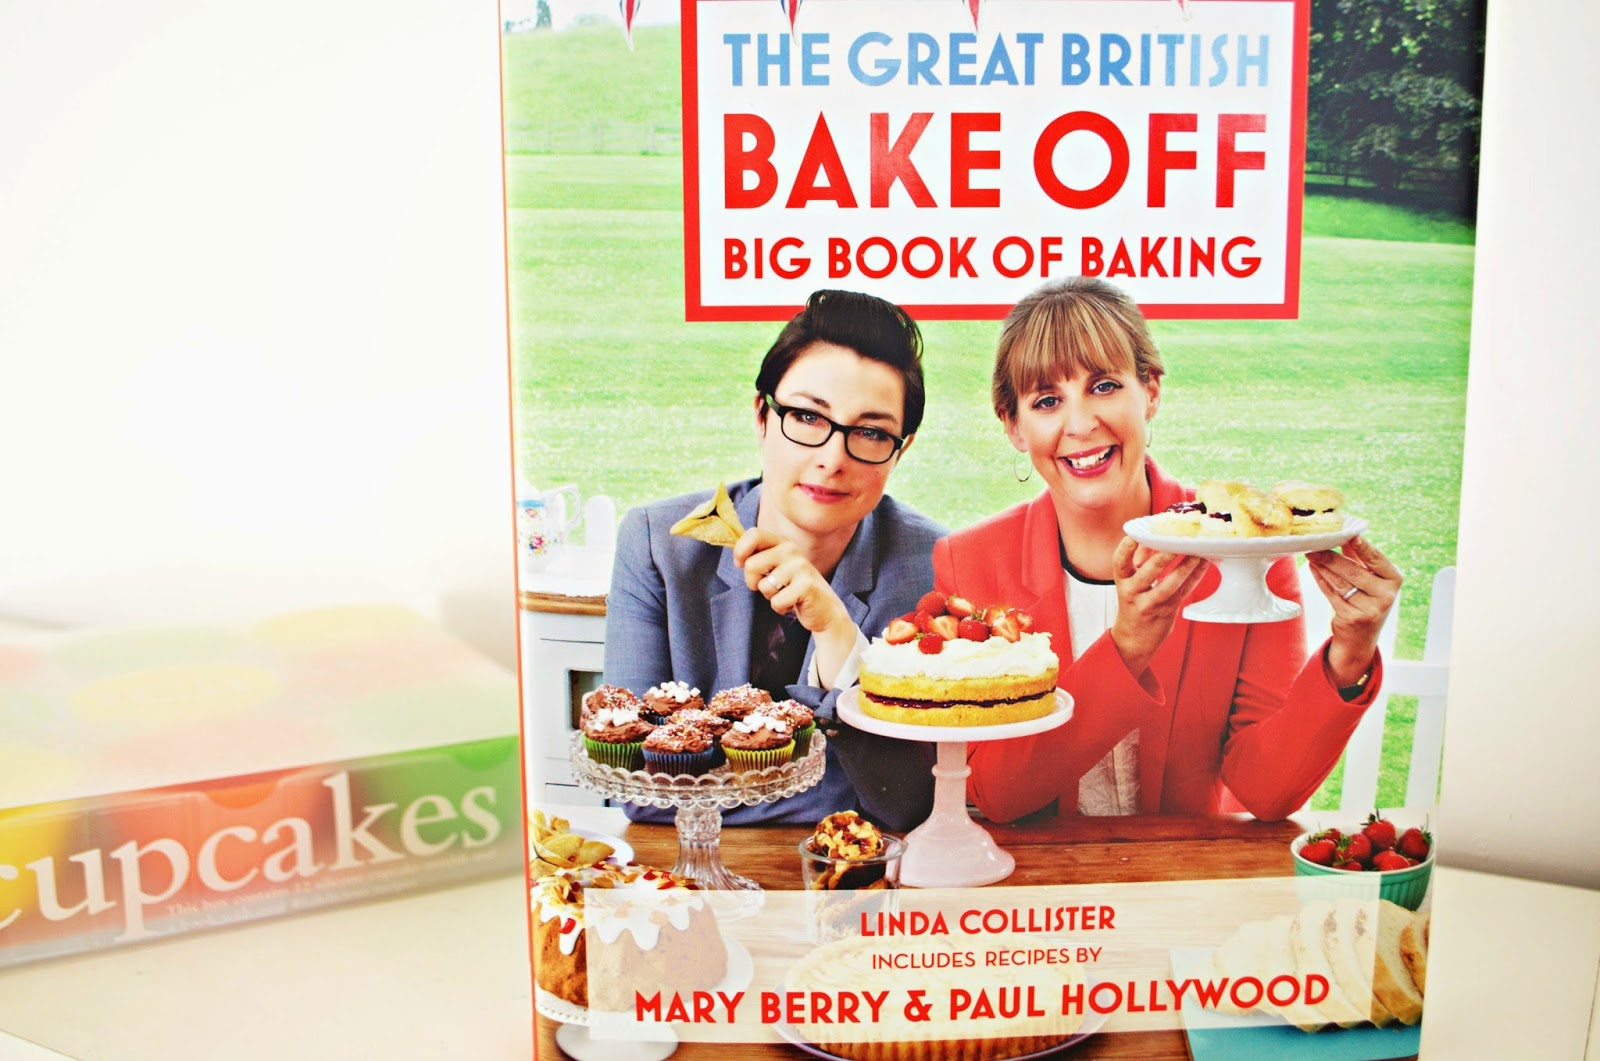 The Great British Bake Off Big Book of Baking and Silicone Cupcake Cases. Christmas Gift Ideas